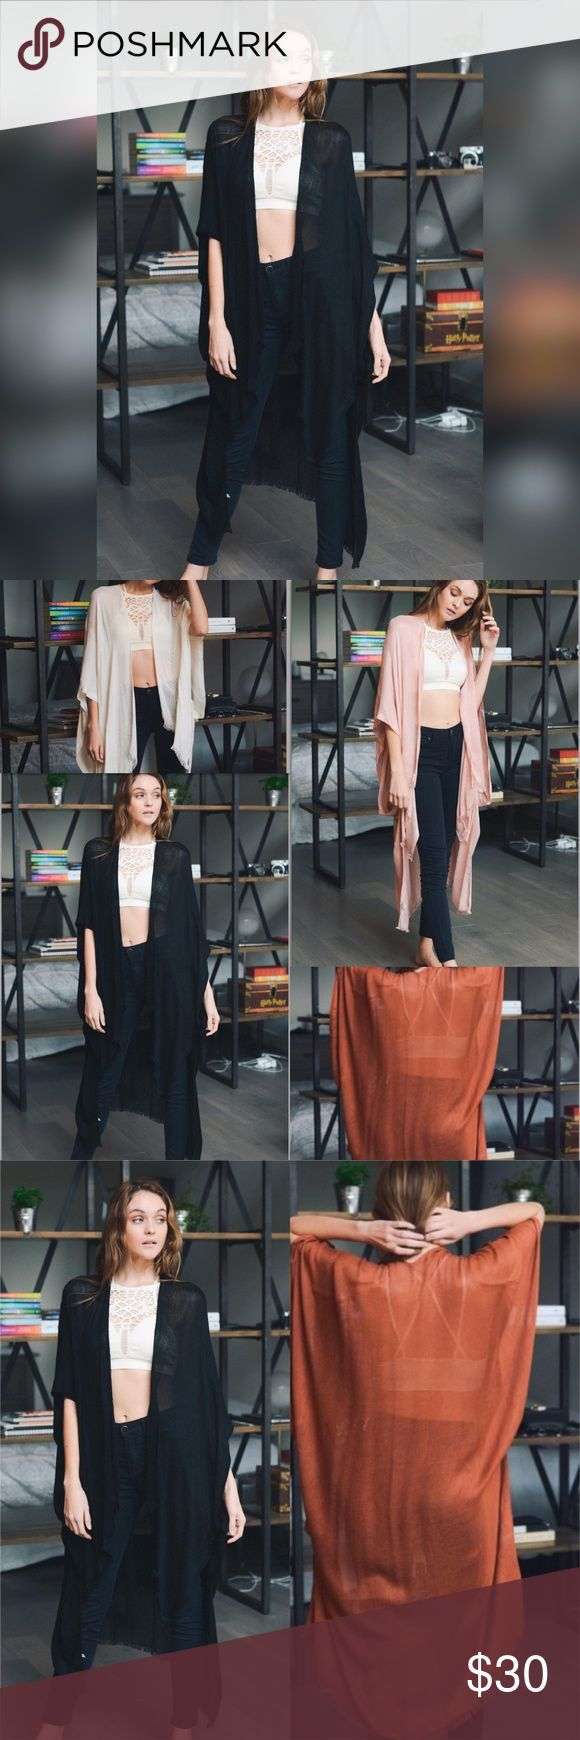 """SALE!!! BLACK KIMONO/JACKET/DUSTER Black one size long kimono-style jacket. A great piece for fall! Length is 42"""". 100% Viscose. Also available in rust, blush, and nude. Accessories Scarves & Wraps"""